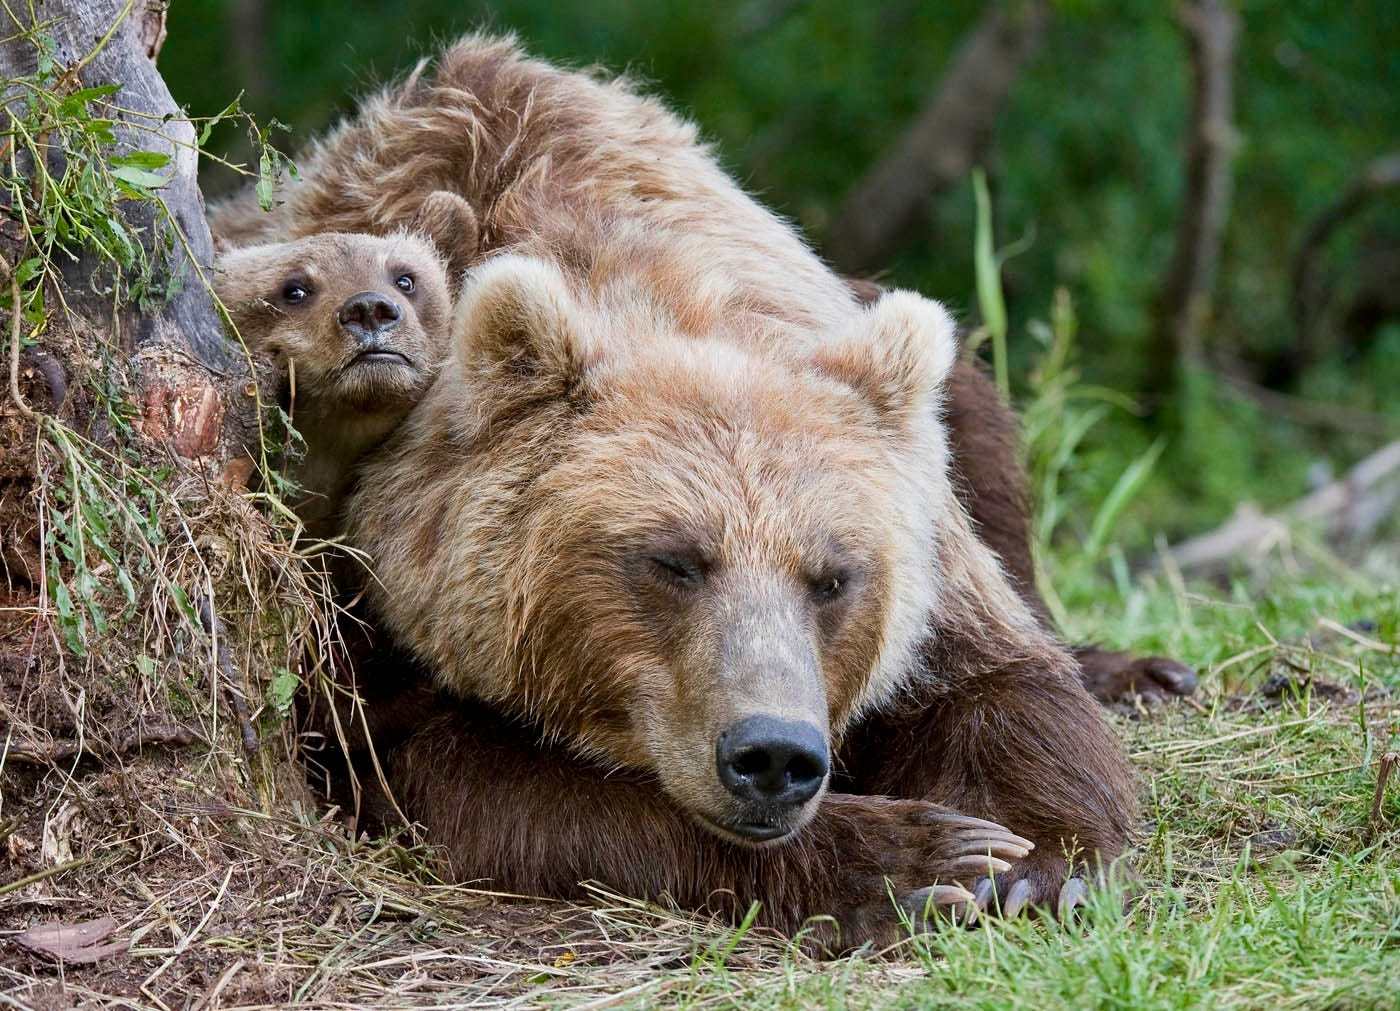 Ungentle charm of Kamchatka bears in photos by Sergey Ivanov - 4